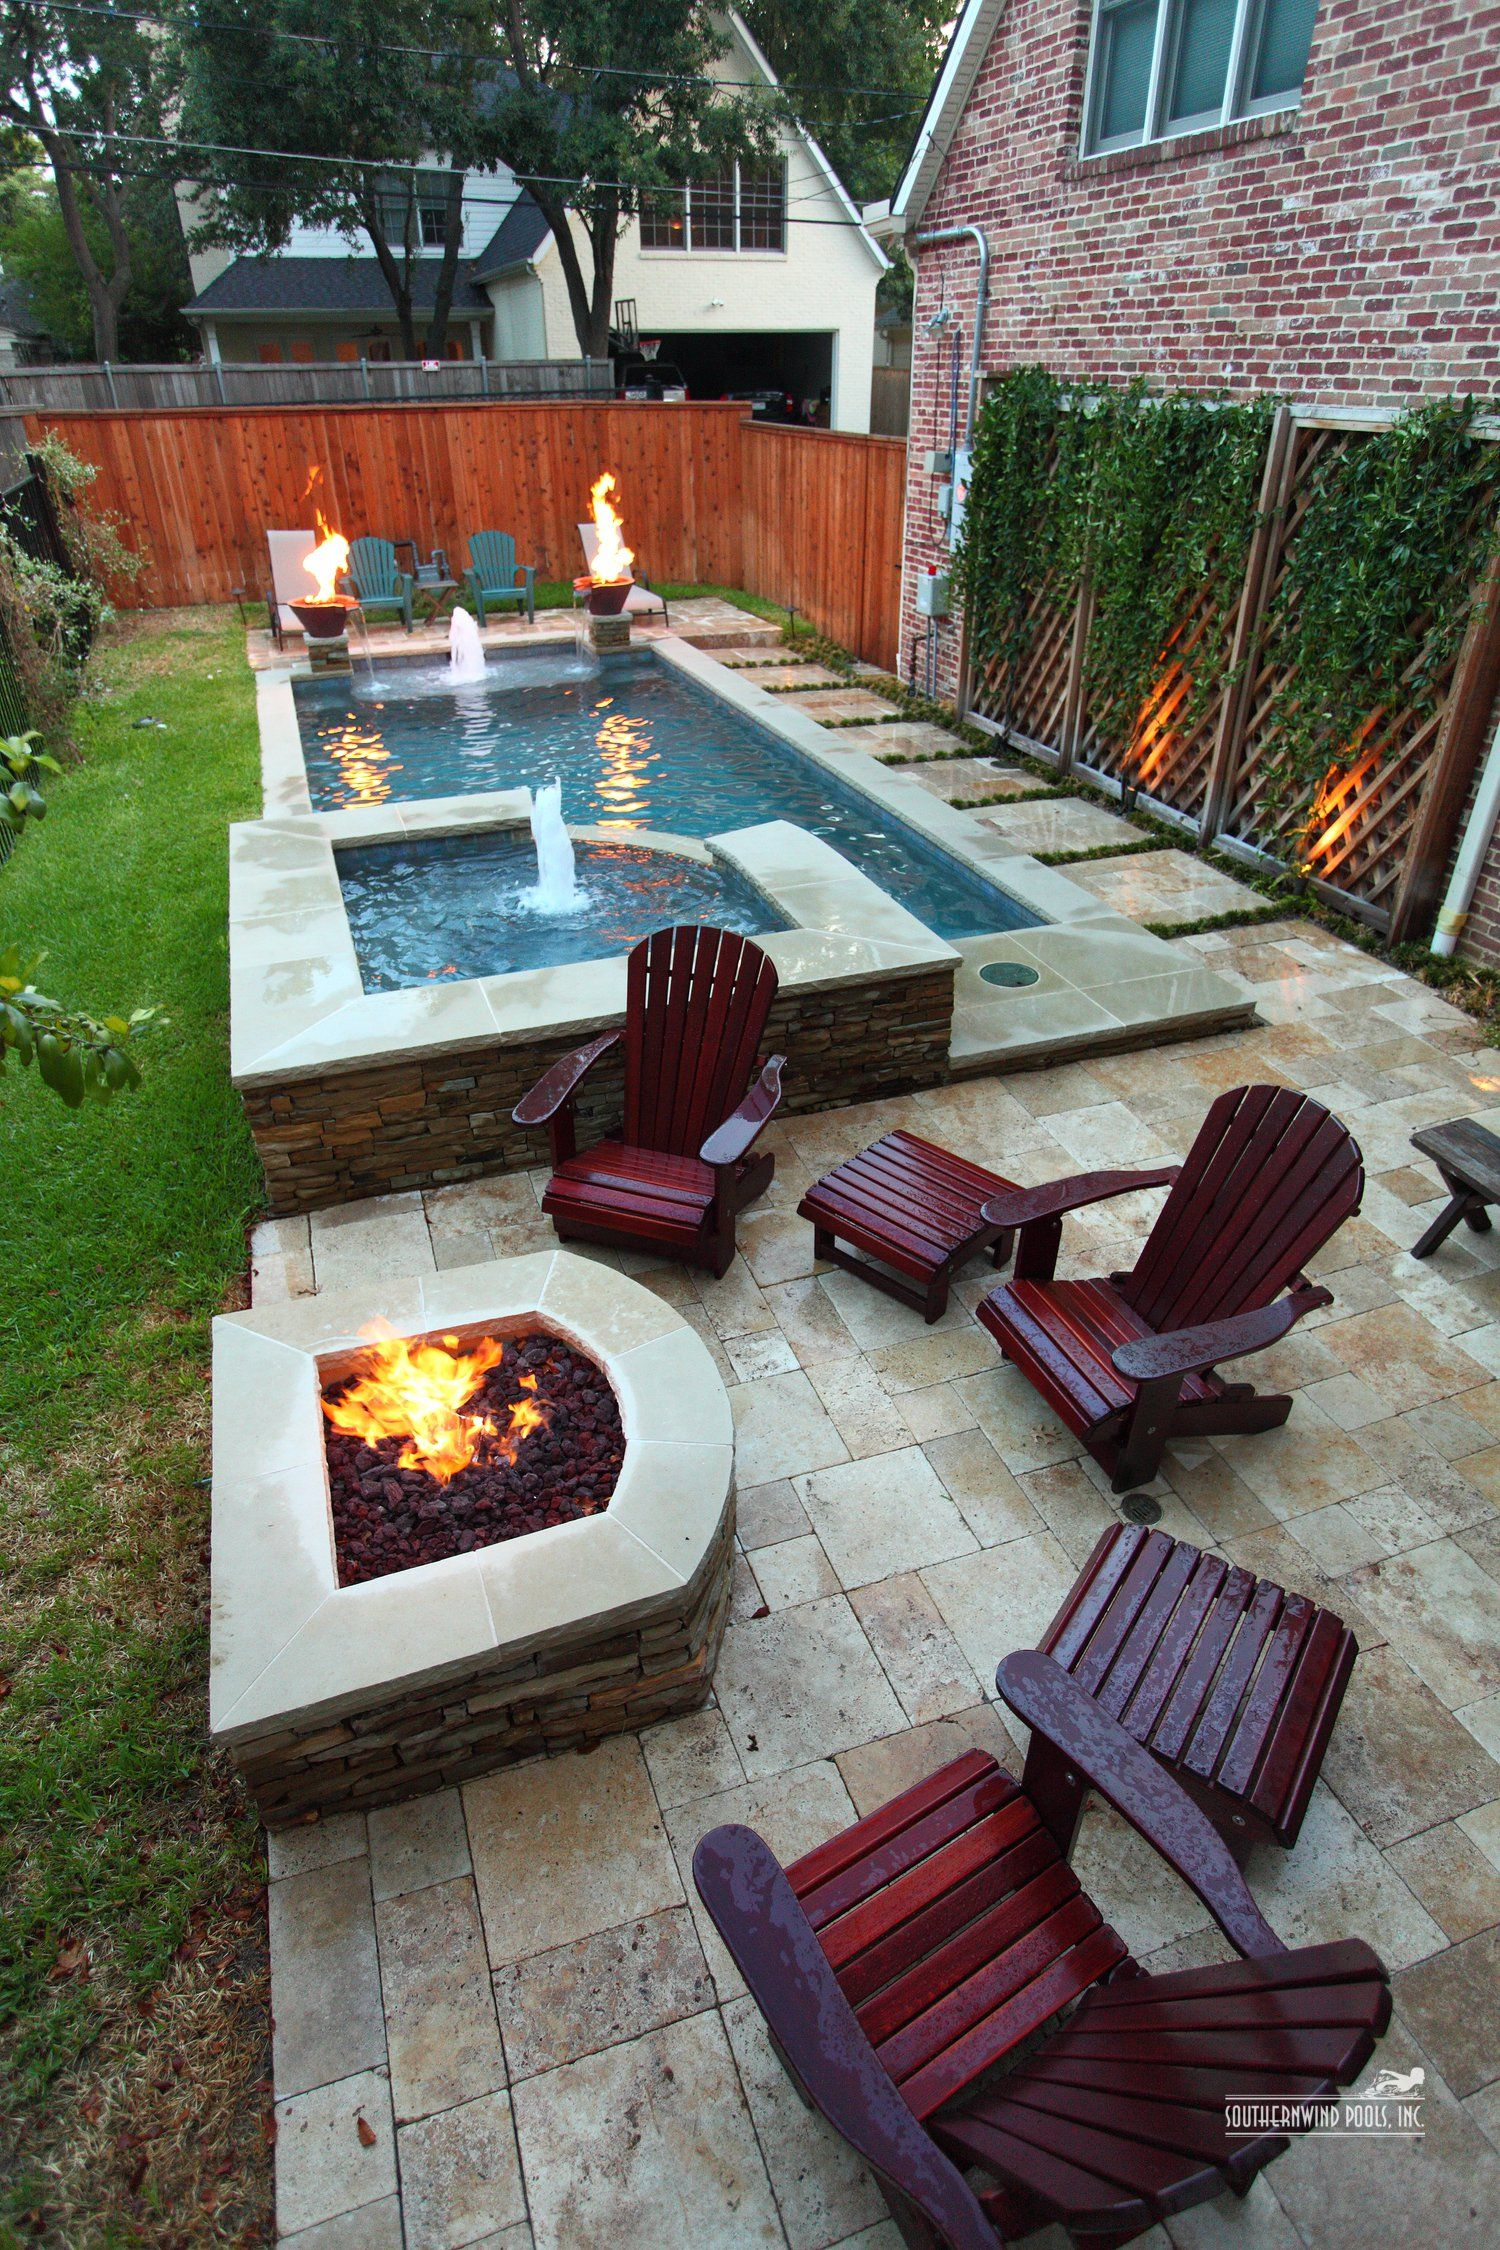 Jacuzzi Pool Ideas Narrow Pool With Hot Tub Firepit Great For Small Spaces Hot